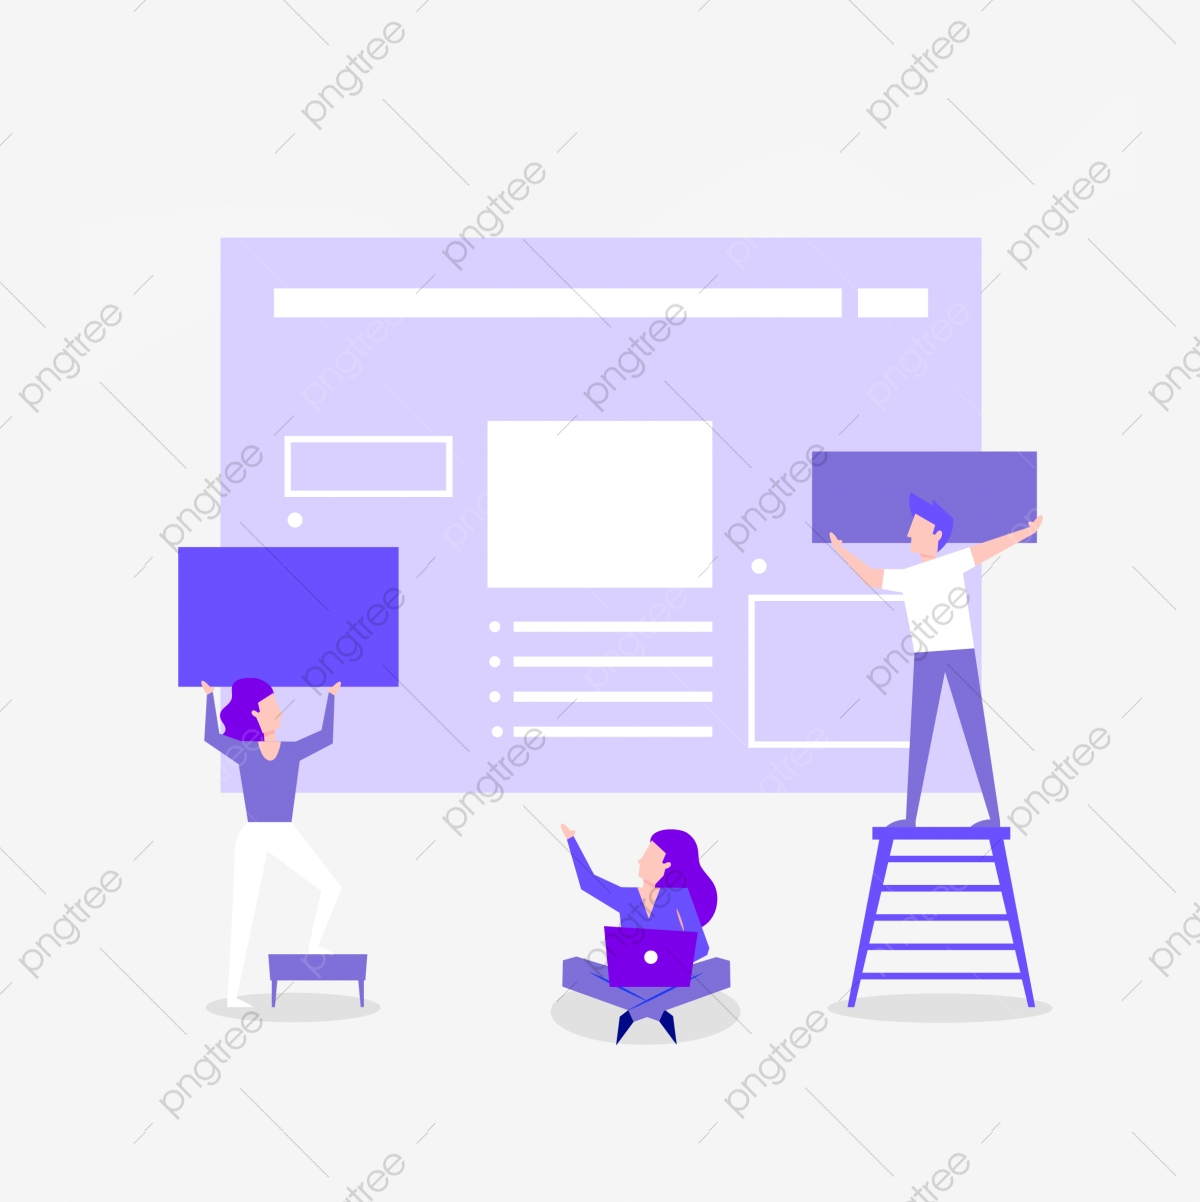 hight resolution of commercial use resource upgrade to premium plan and get license authorization upgradenow website website clipart